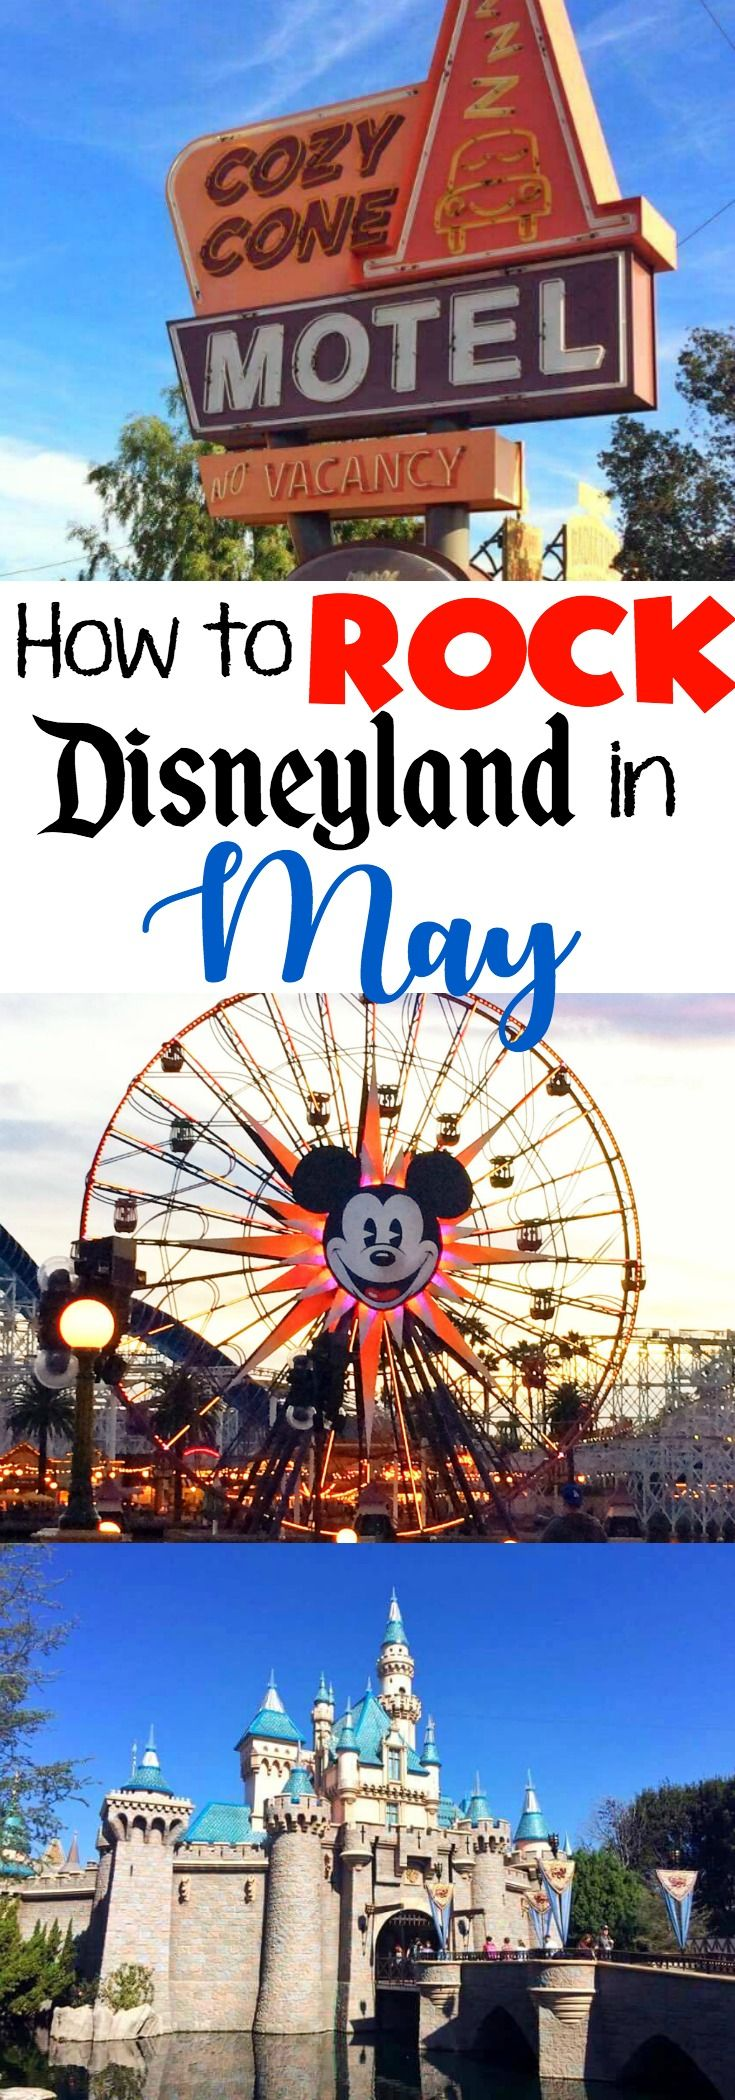 How to ROCK Disneyland in May-Six things to think about  Disneyland vacation, Disneyland vacation planning, Disneyland vacation tips, Disneyland vacation diy, Disneyland vacation outfits, Disneyland vacation ideas!!